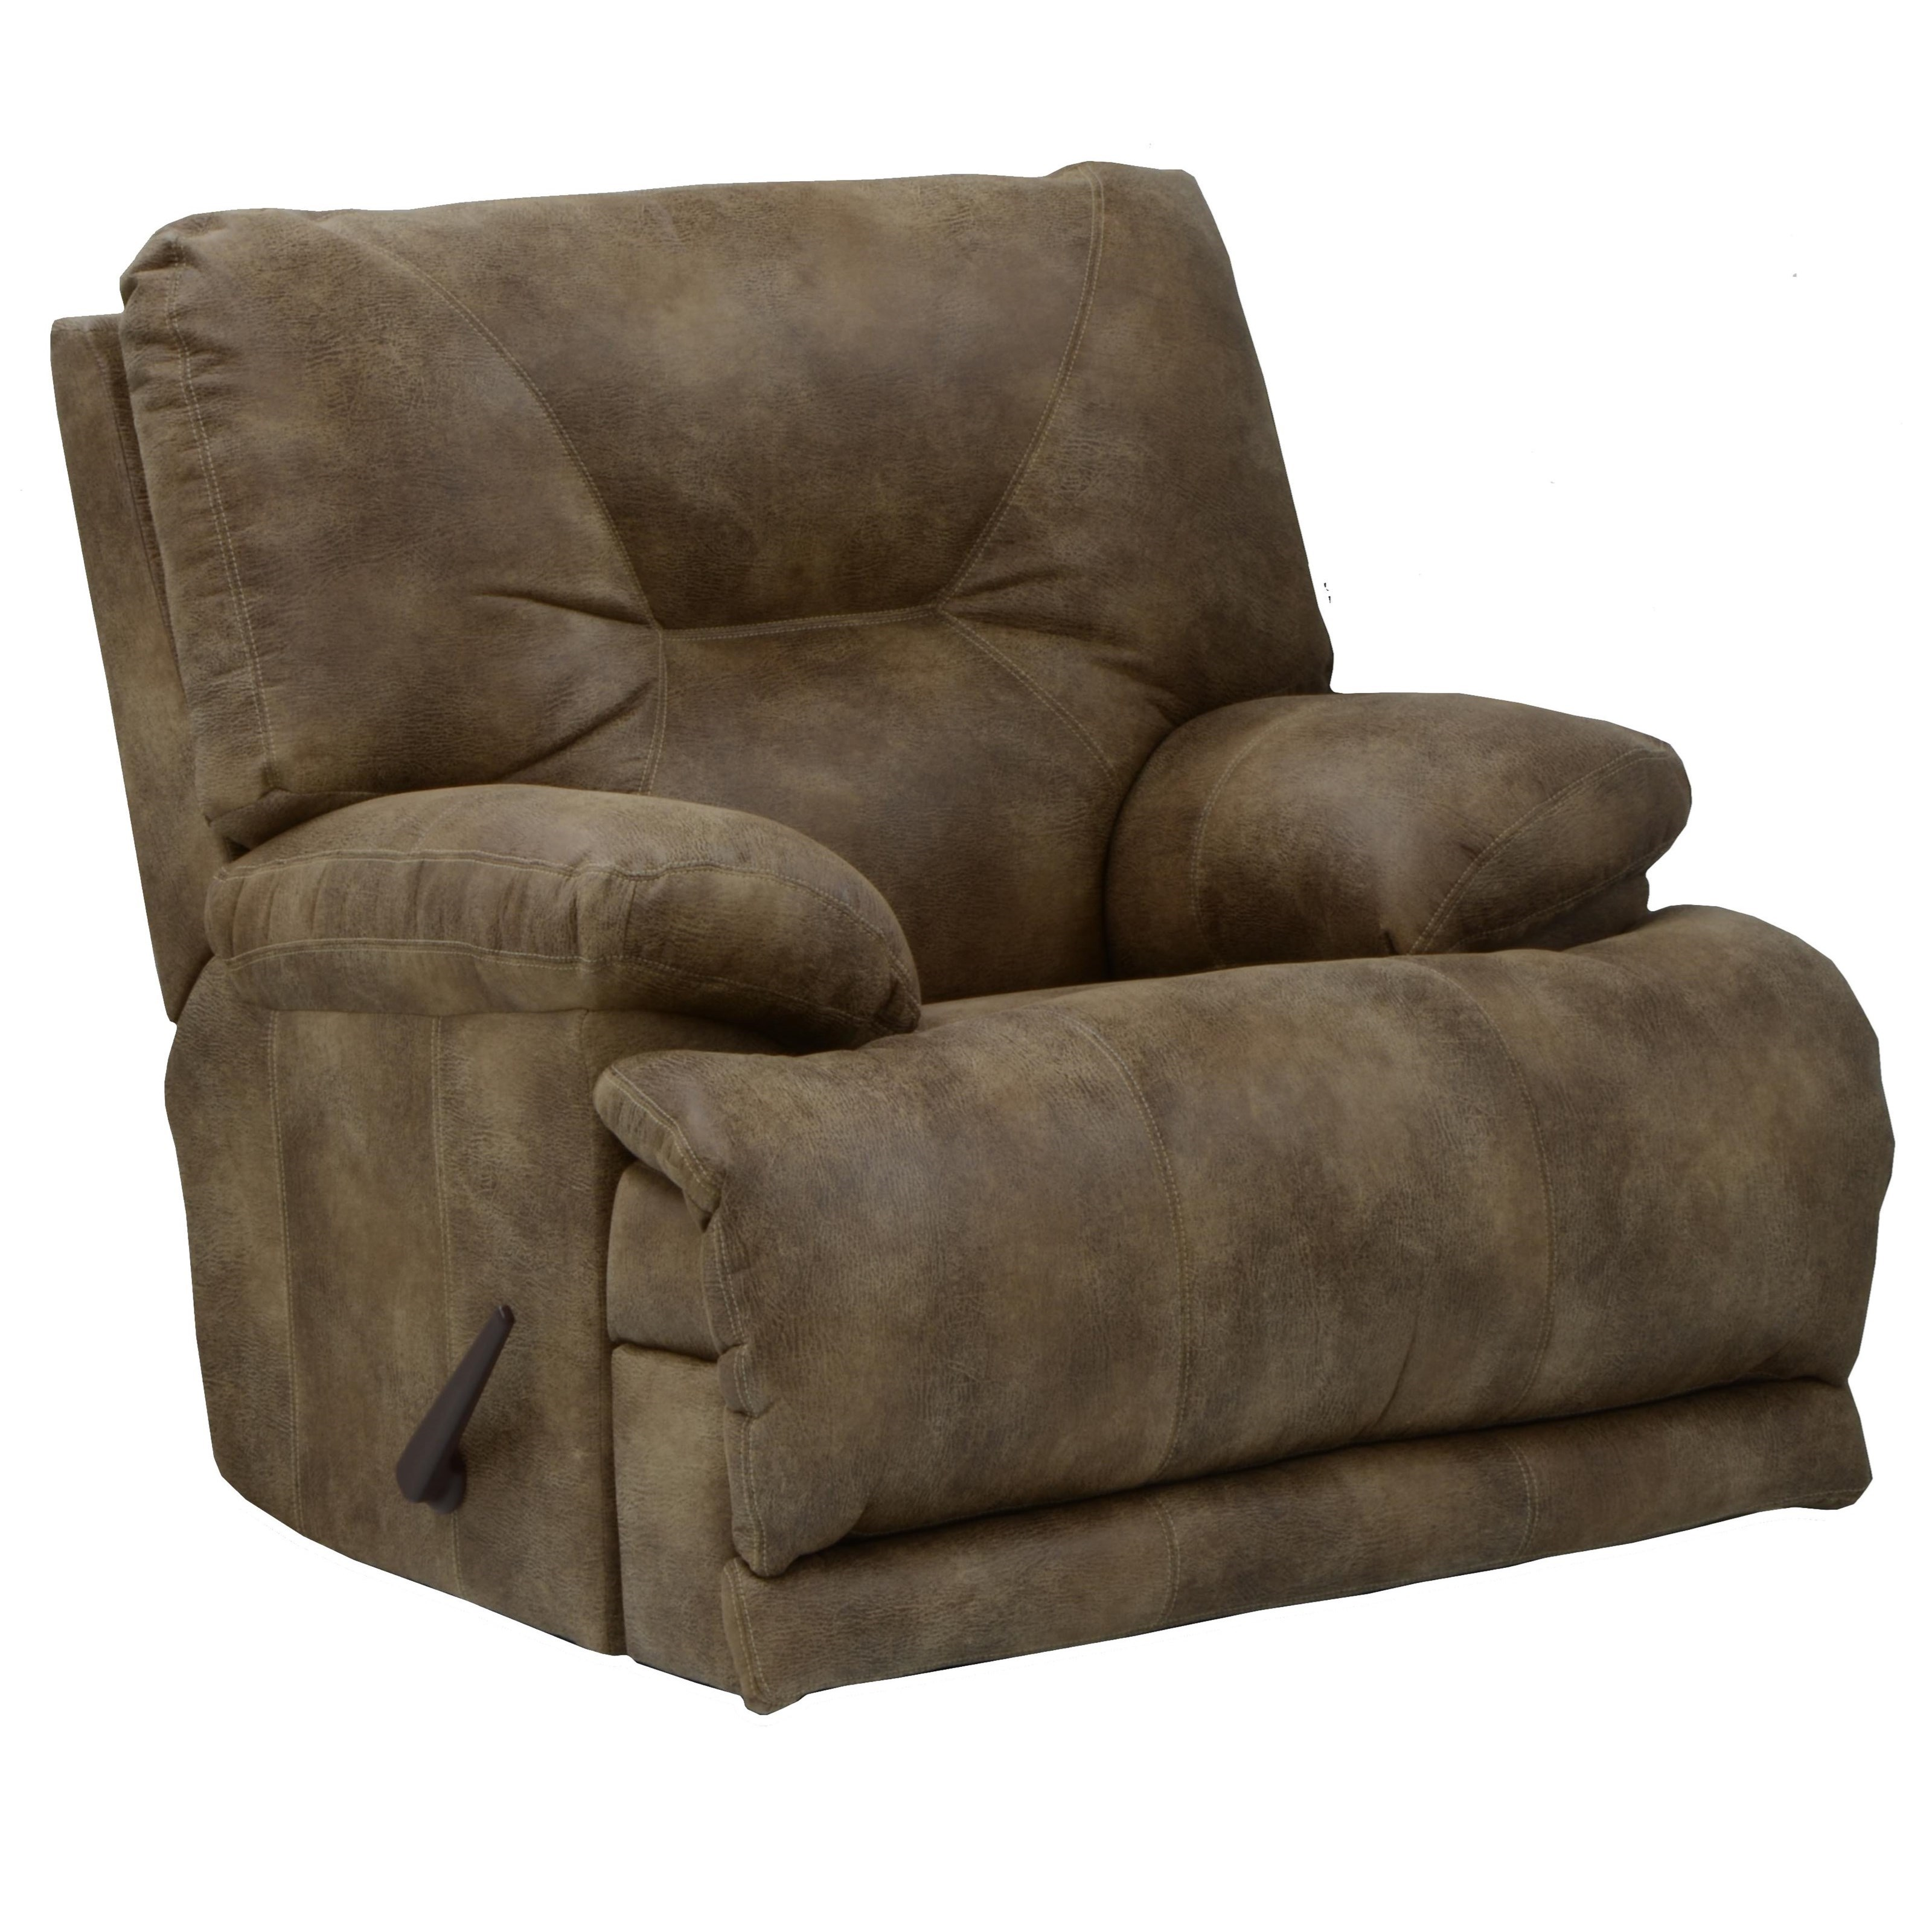 Voyager Power Lay Flat Recliner by Catnapper at Standard Furniture